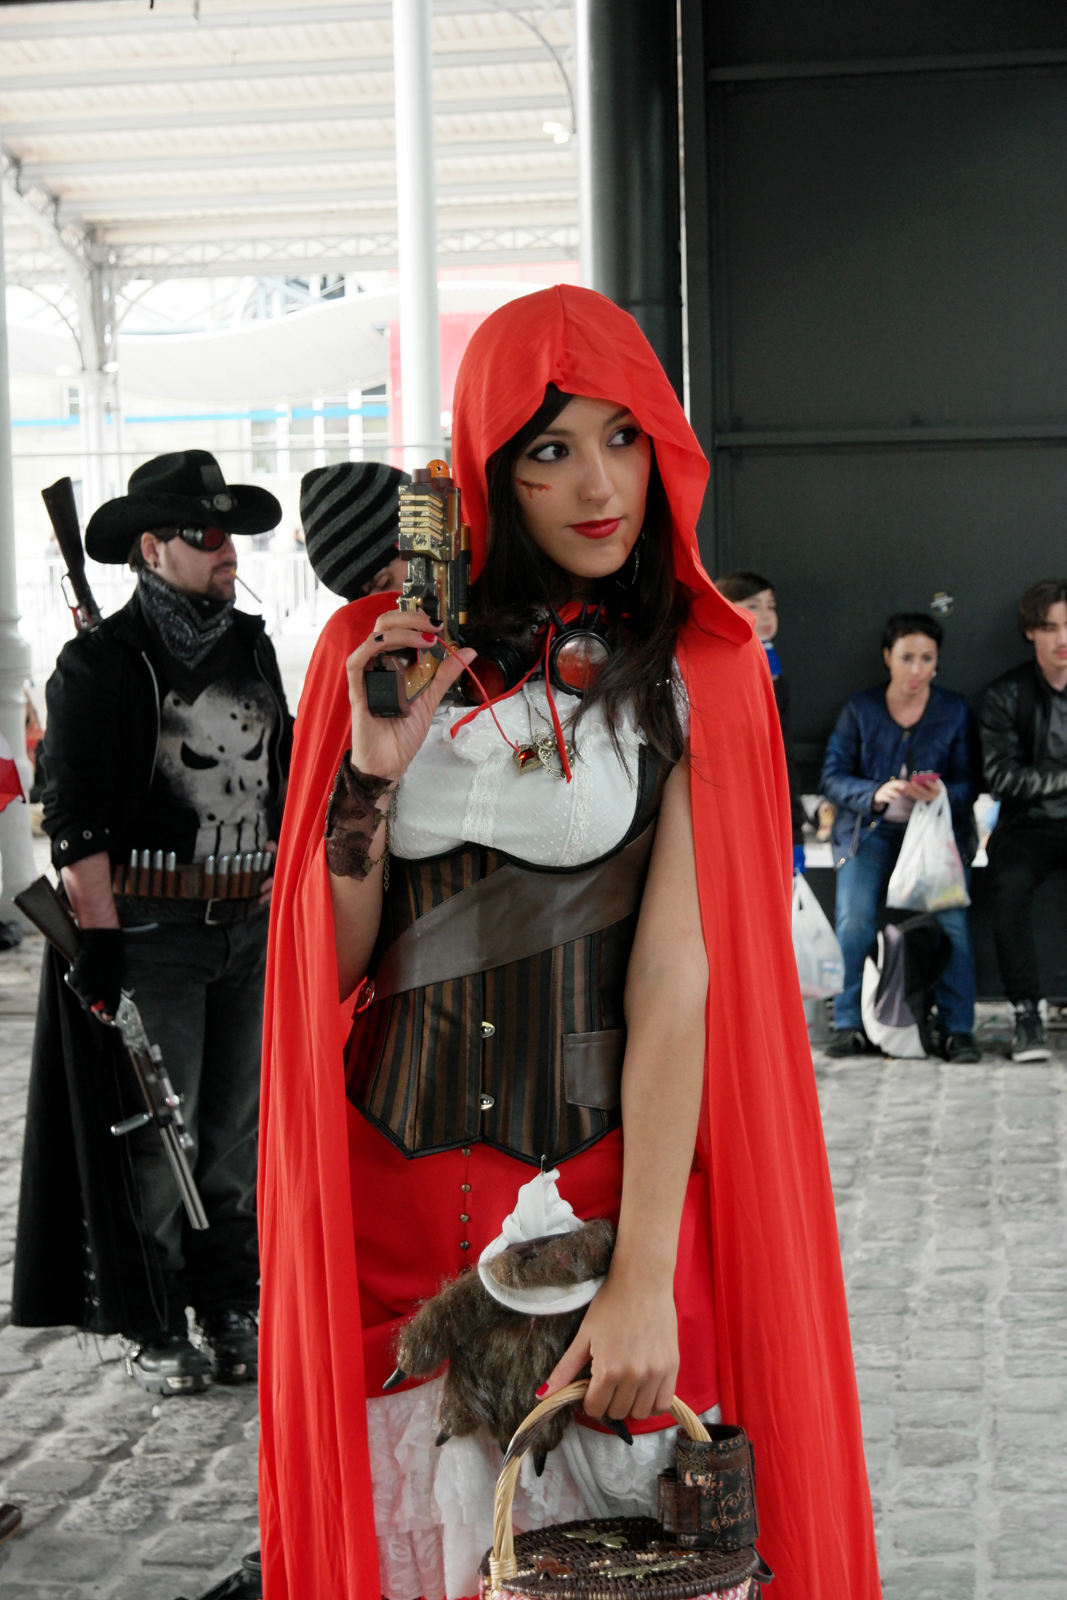 comic con paris 2015   cosplay en folie  bogosses et cr u00e9ations  u00e0 la villette